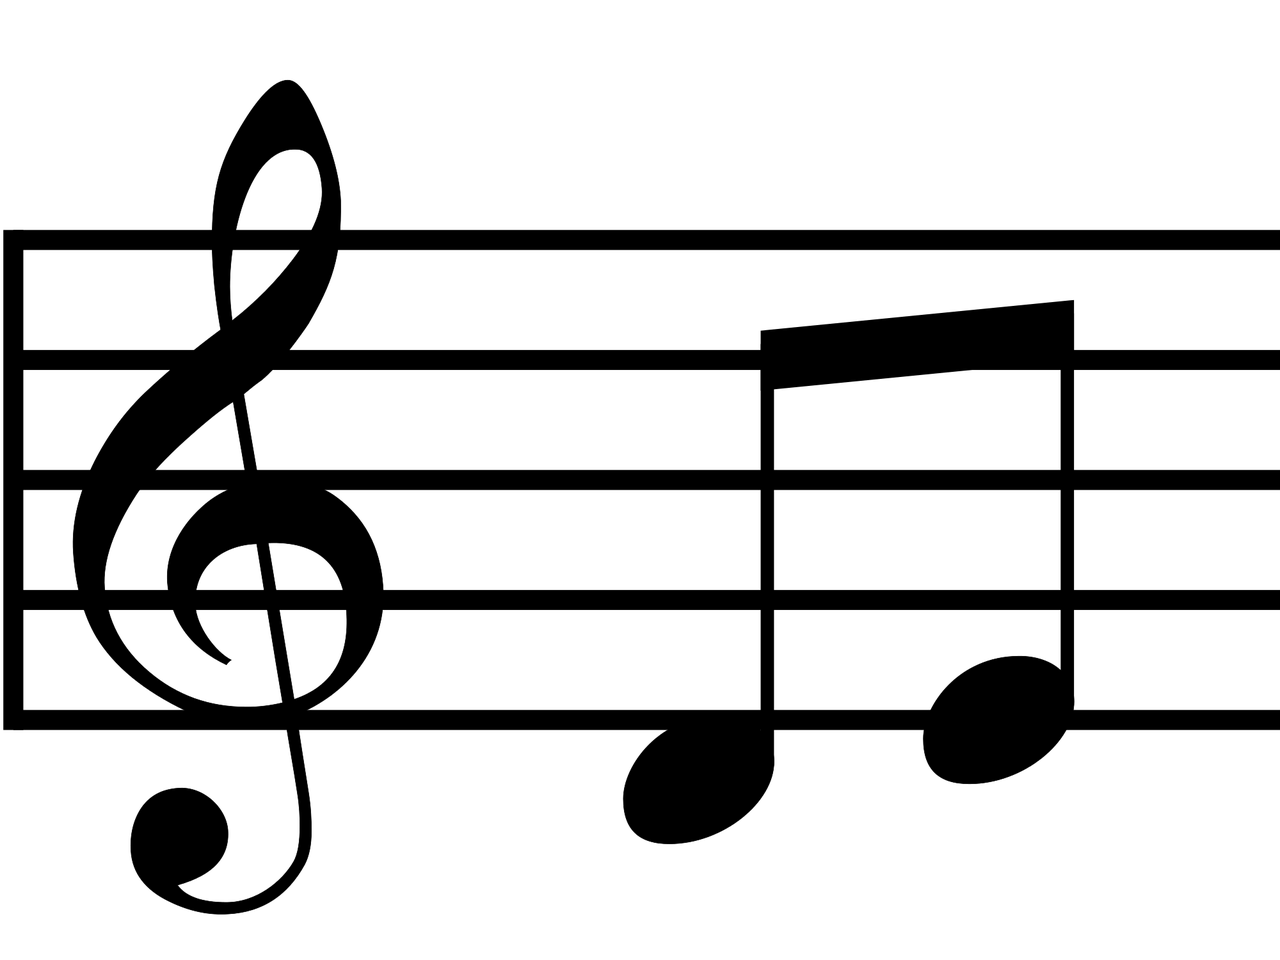 Images For Tumblr Transparent Music Notes: Musical Notes Treble Clef And 2 Half Notes Transparent PNG